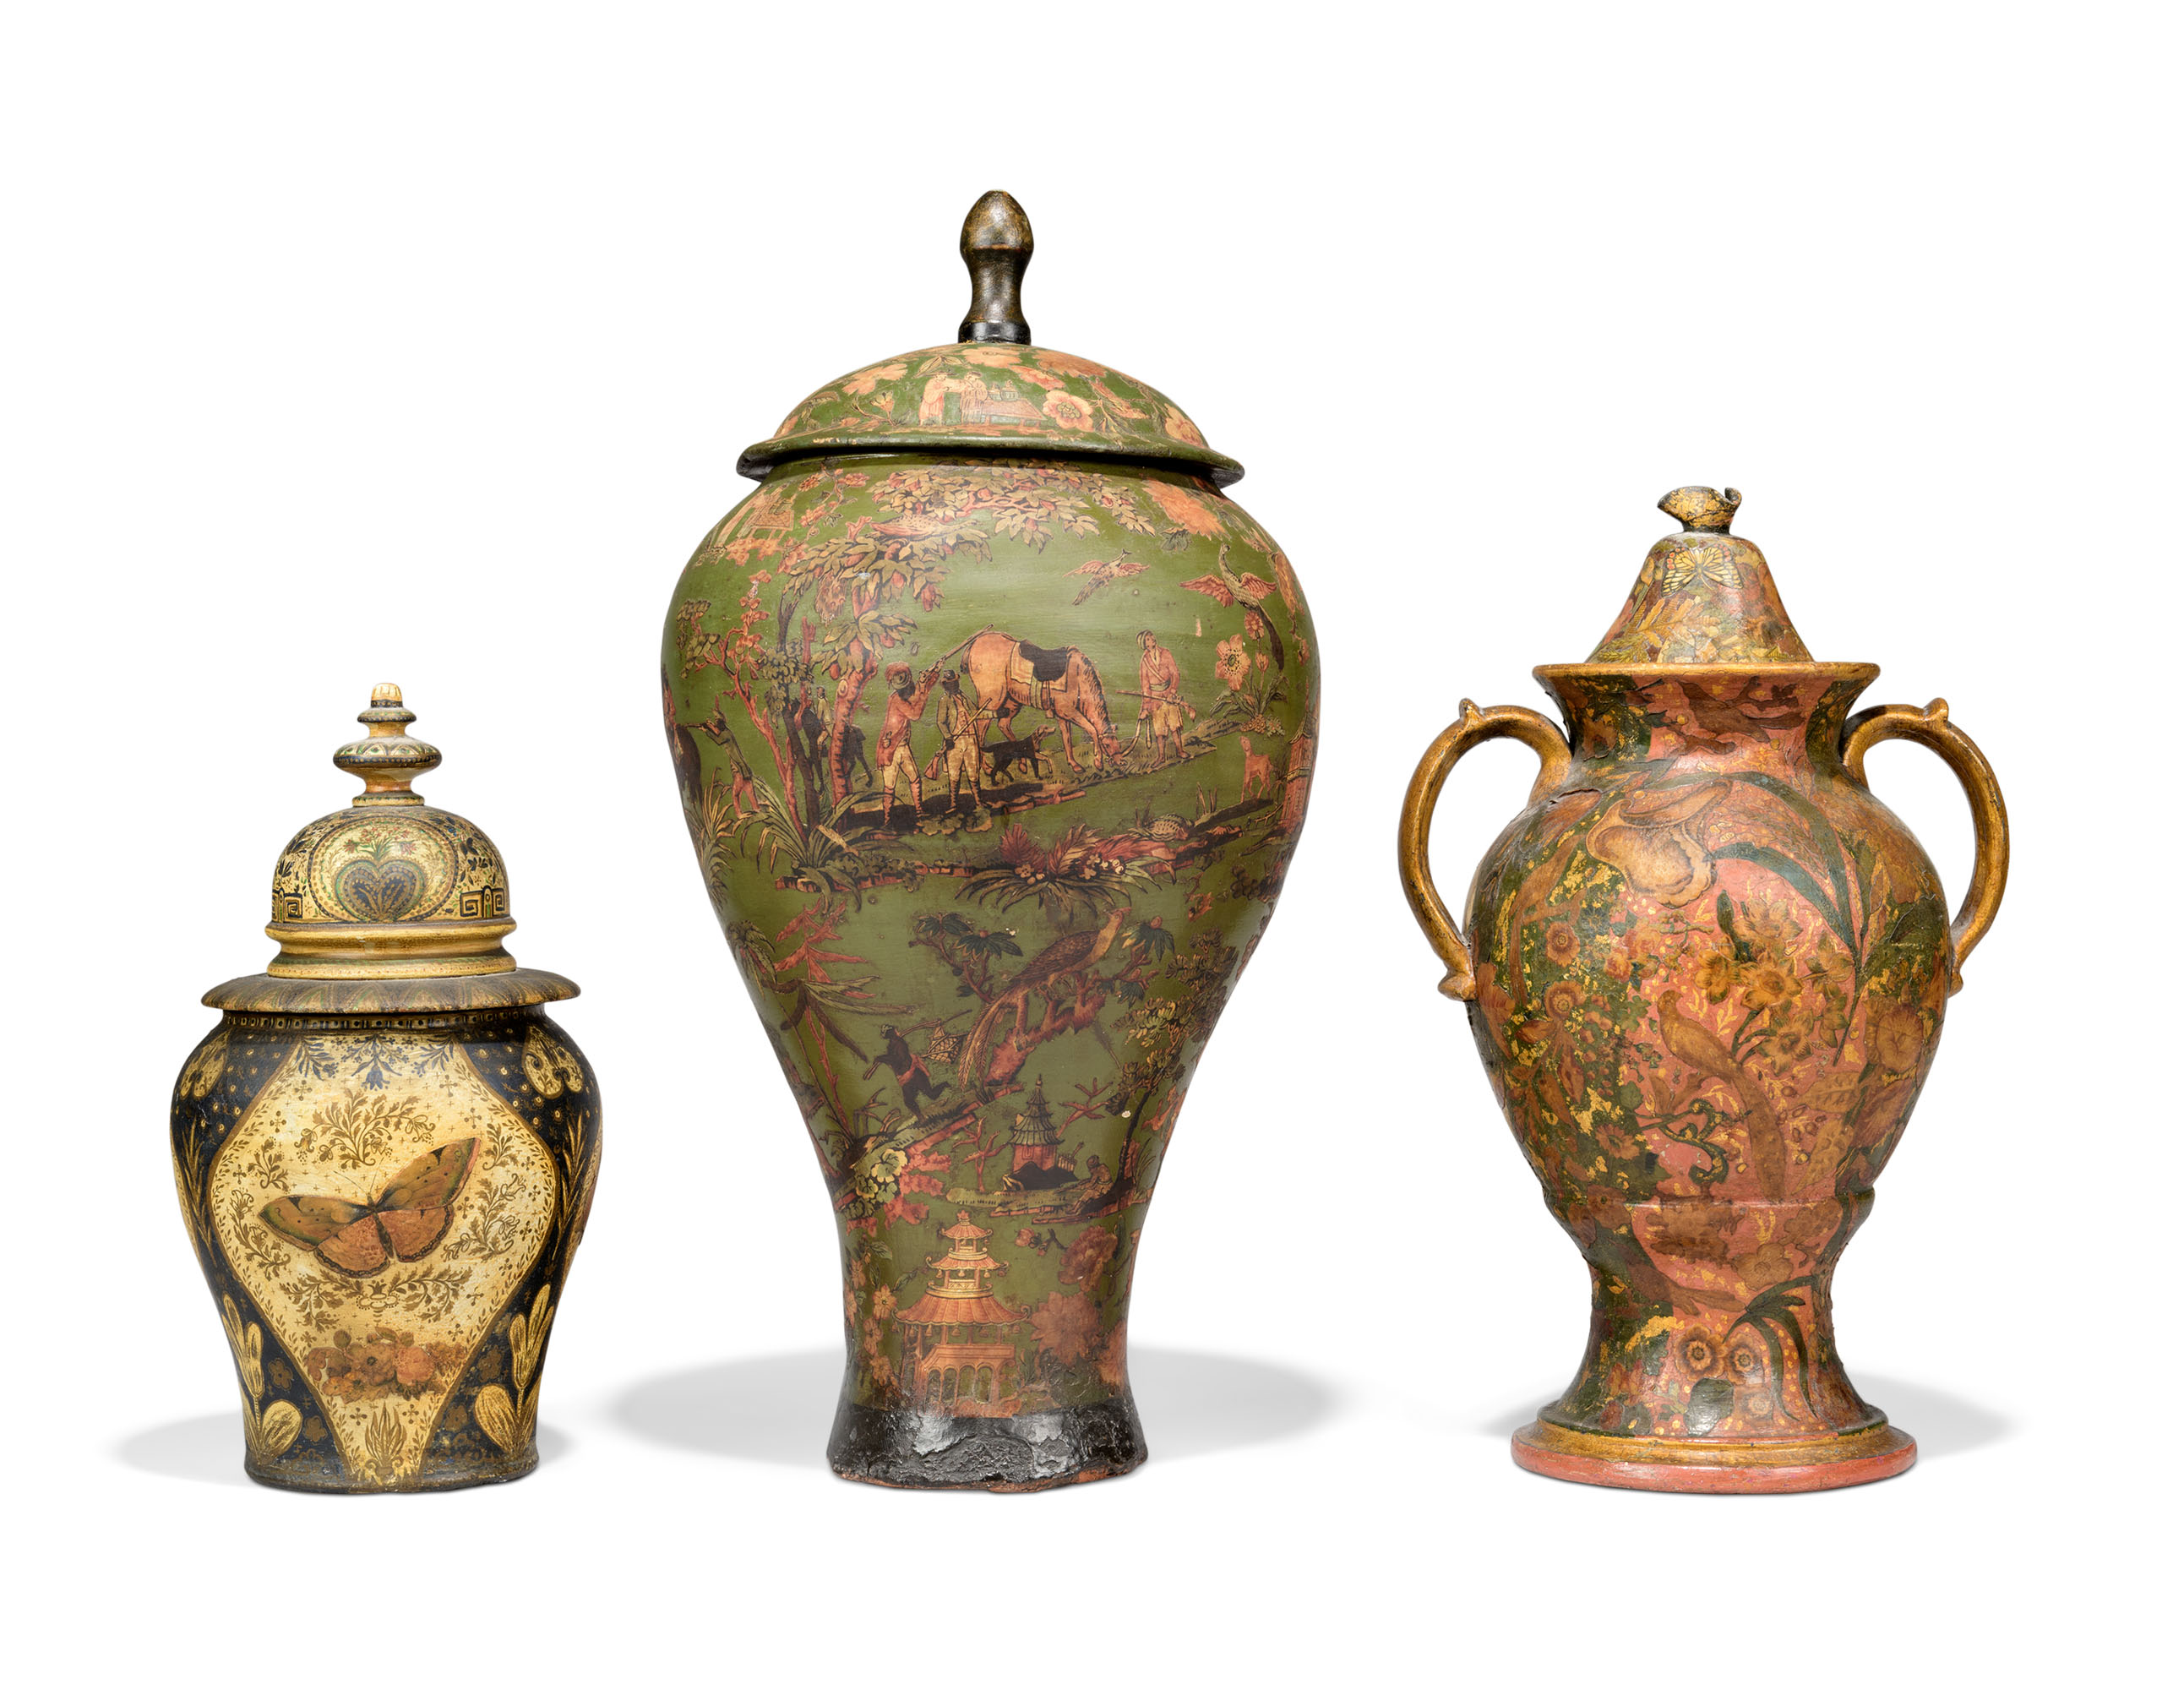 THREE NORTH EUROPEAN POLYCHROME-DECORATED JARS AND COVERS